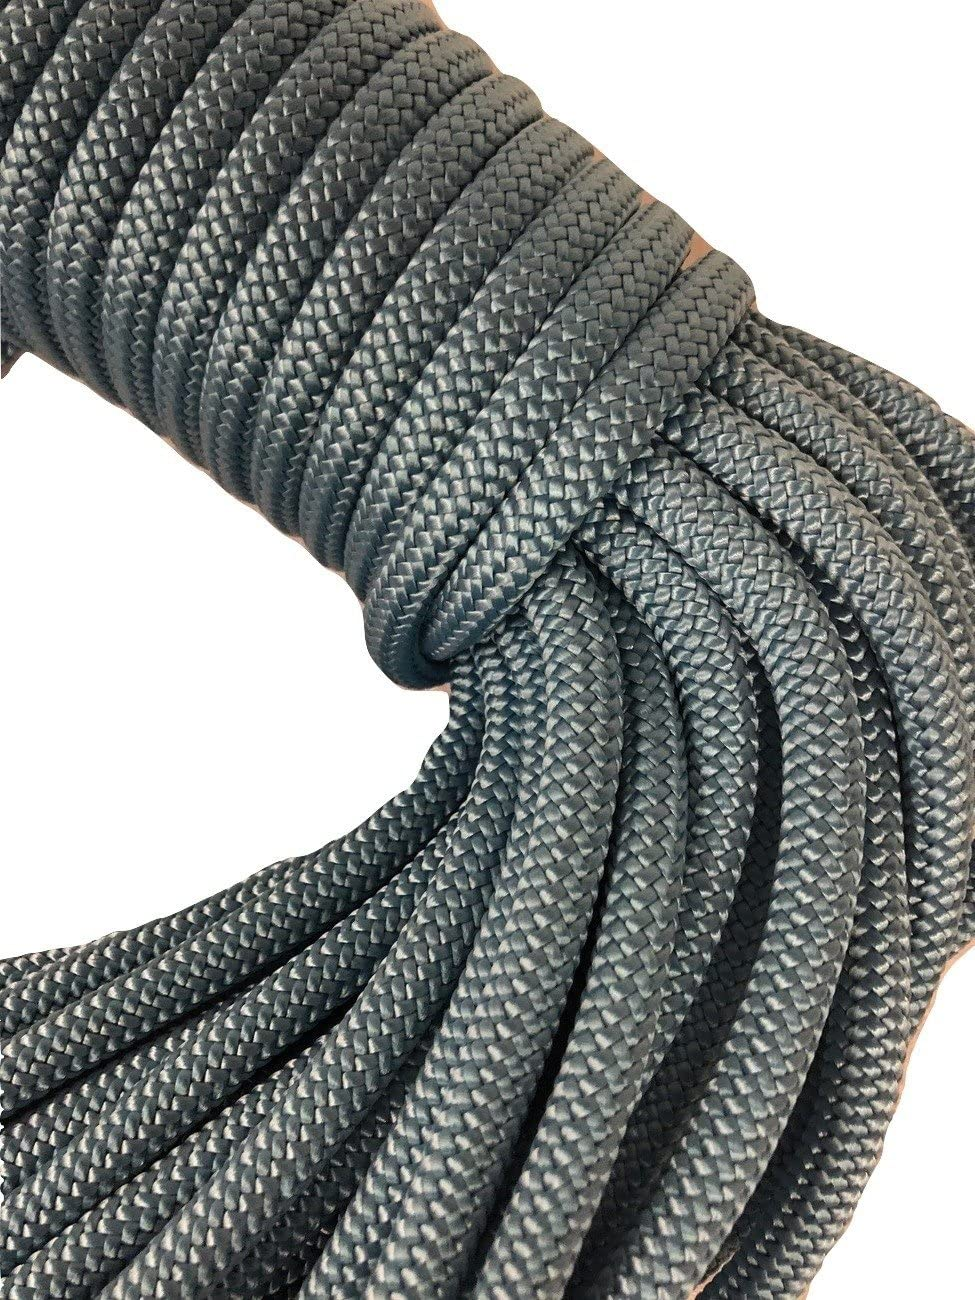 Double Braid Nylon Seasonal Wrap Introduction Rope 3 8 50 New arrival Blue Light inch ft